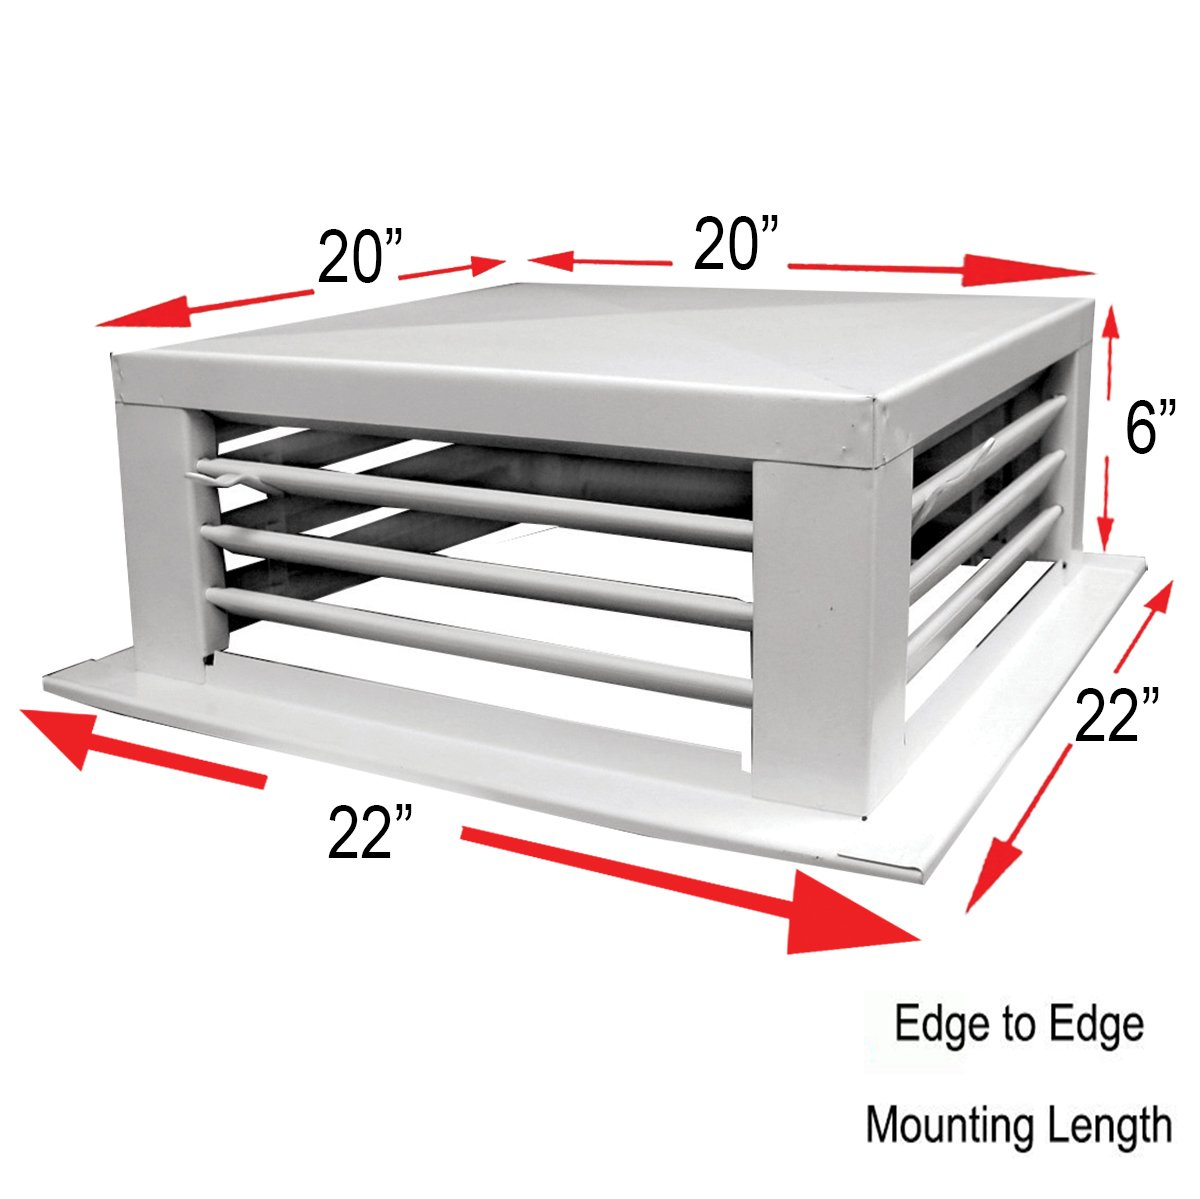 GSW DF-20P 20-Inch White Powder Coated 4-Way Adjustable Metal Diffuser for Evaporative/Swamp Cooler